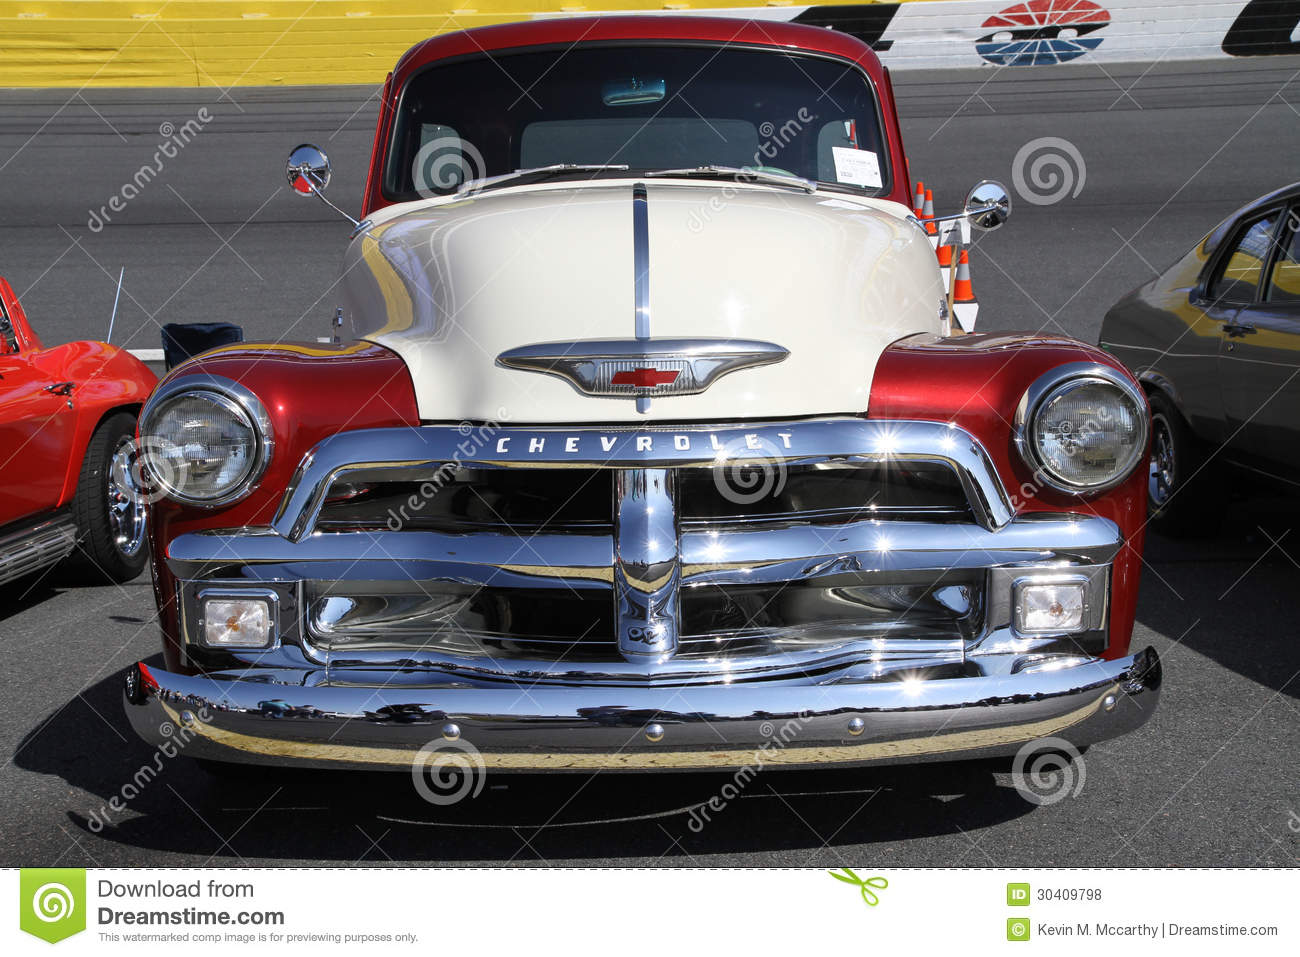 Antique chevrolet pickup truck editorial stock photo for Speedway motors used cars